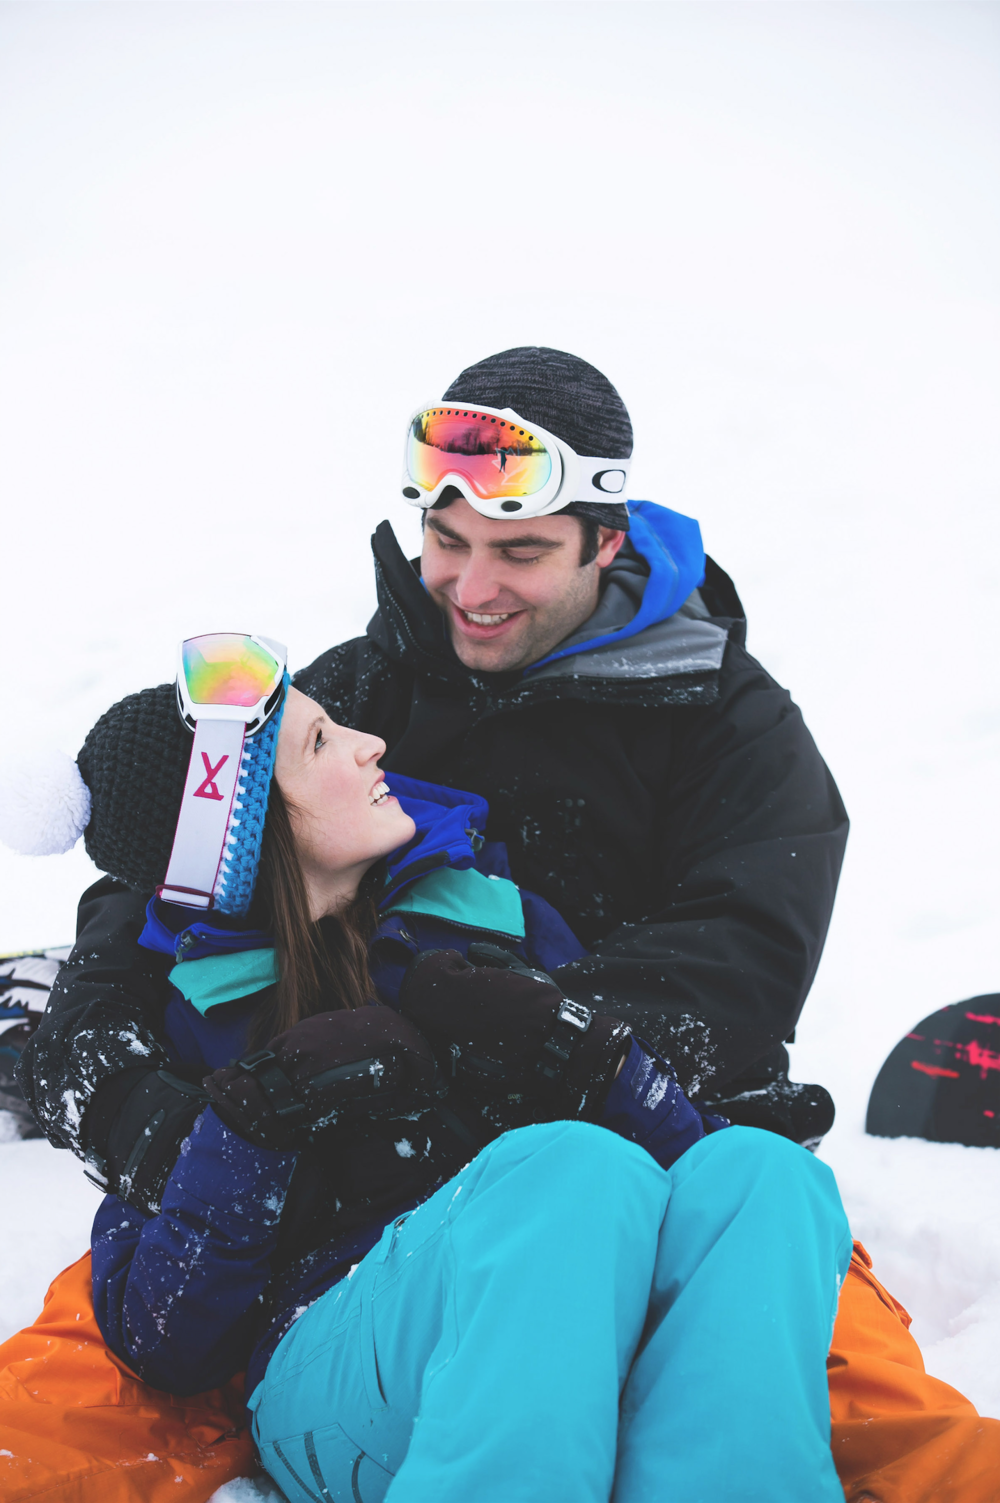 Engagement-Photos-Hamilton-Niagara-Toronto-Burlington-Oakville-Photographer-Engaged-Ring-Photography-Snowboarding-Winter-Moments-by-Lauren-Image-8.png